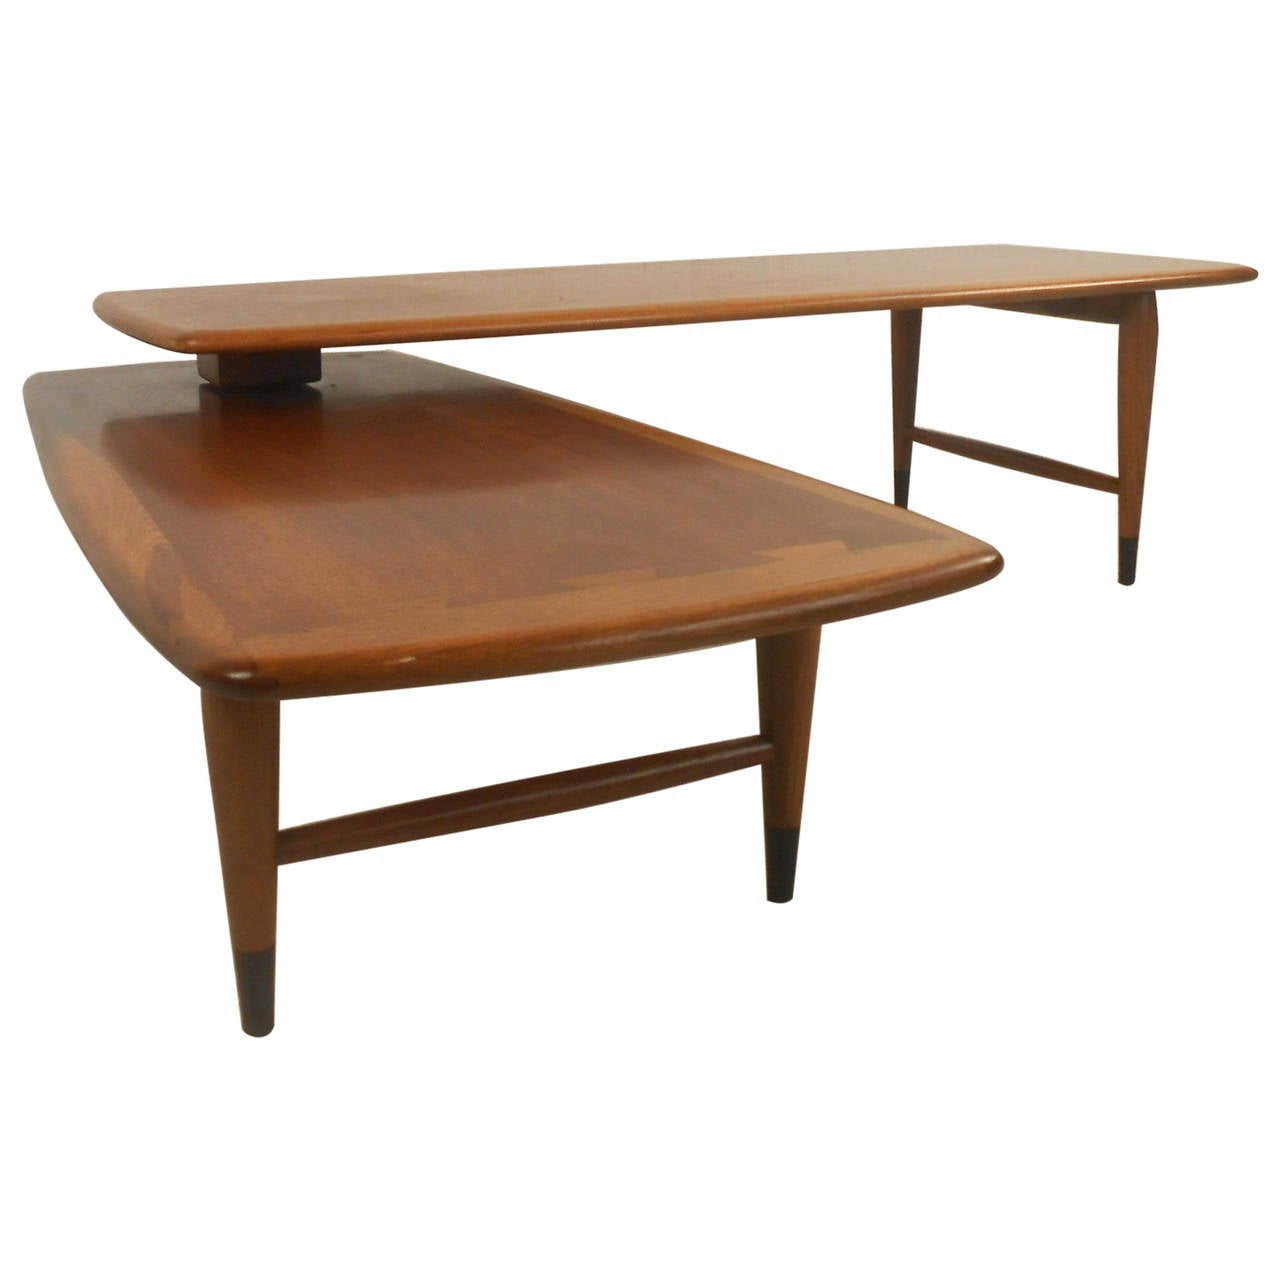 Mid century modern expanding coffee table by lane for sale for Mid century modern coffee table